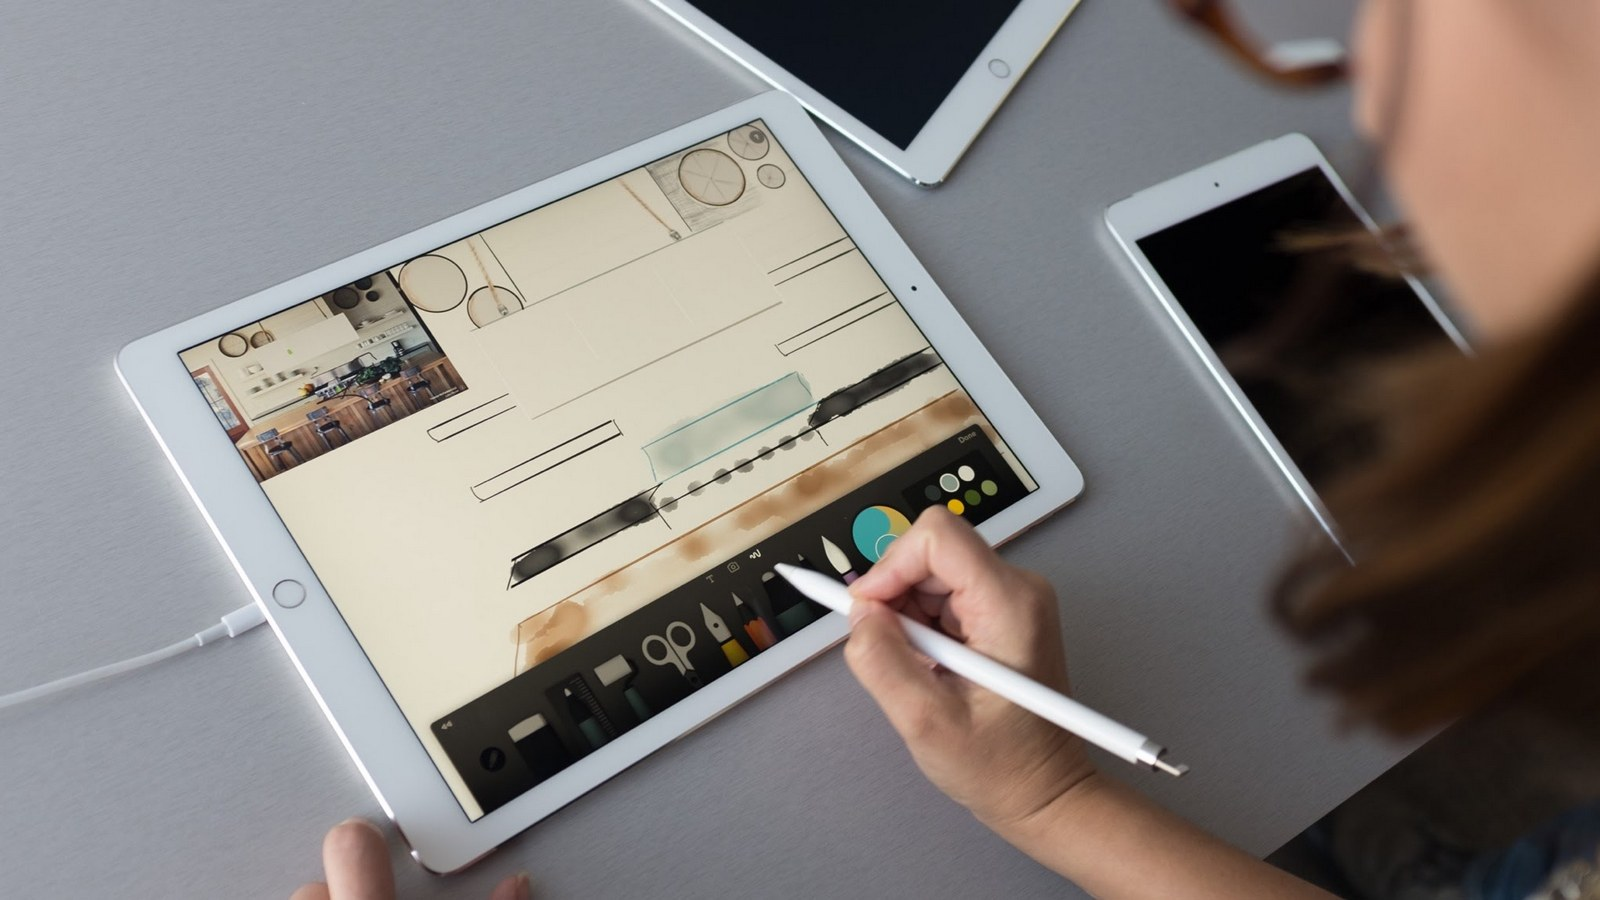 The new iPad can be seriously delayed